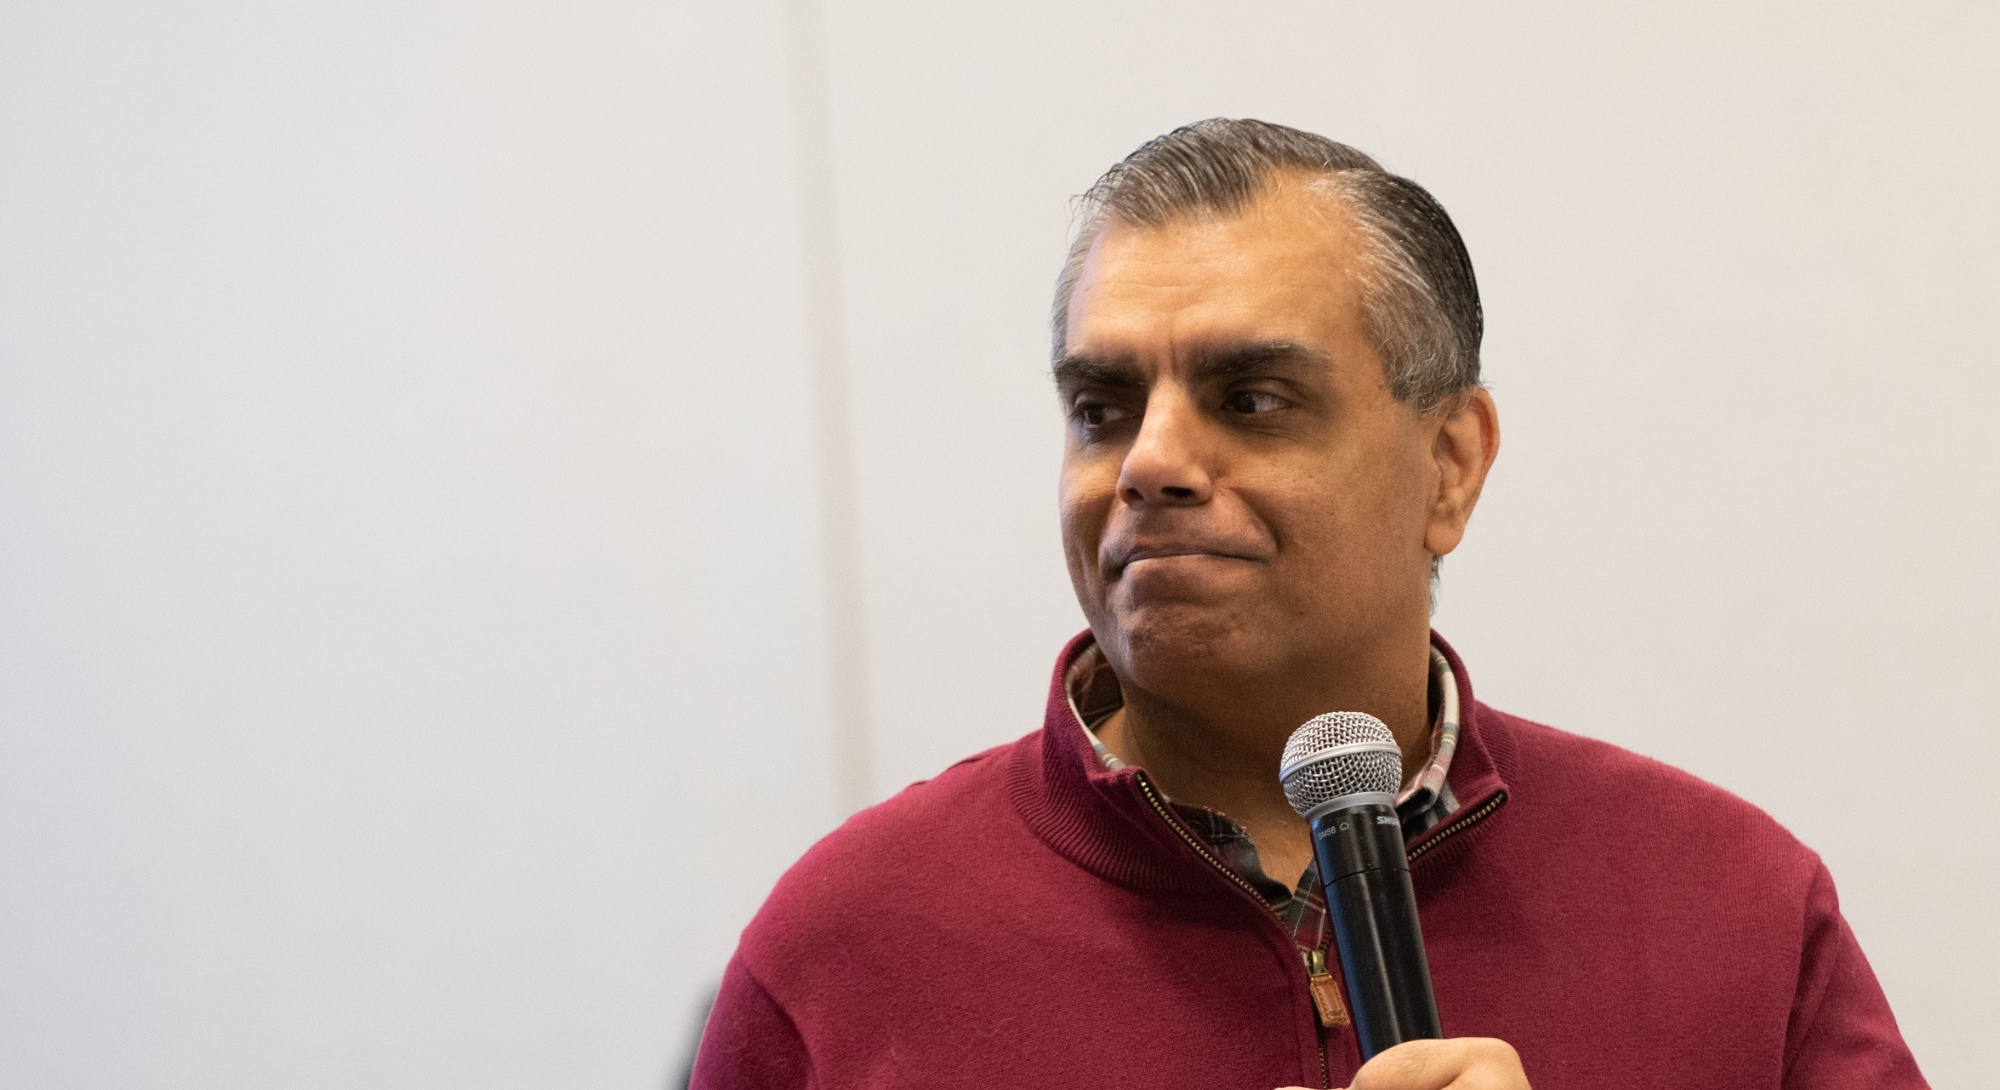 A man with short thinning gray hair, medium-dark toned skin, and a red sweater smiles emotionally while holding a microphone.